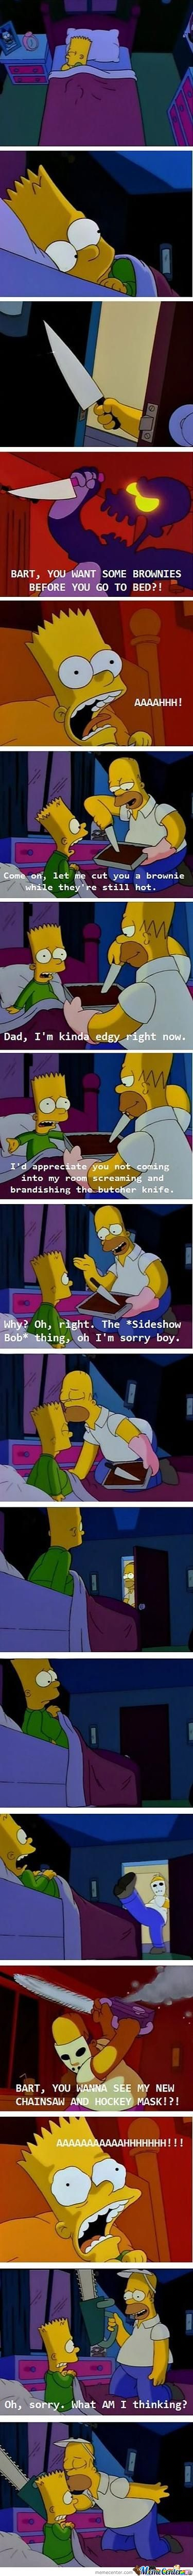 Homer Simpson - The Original Troll Dad